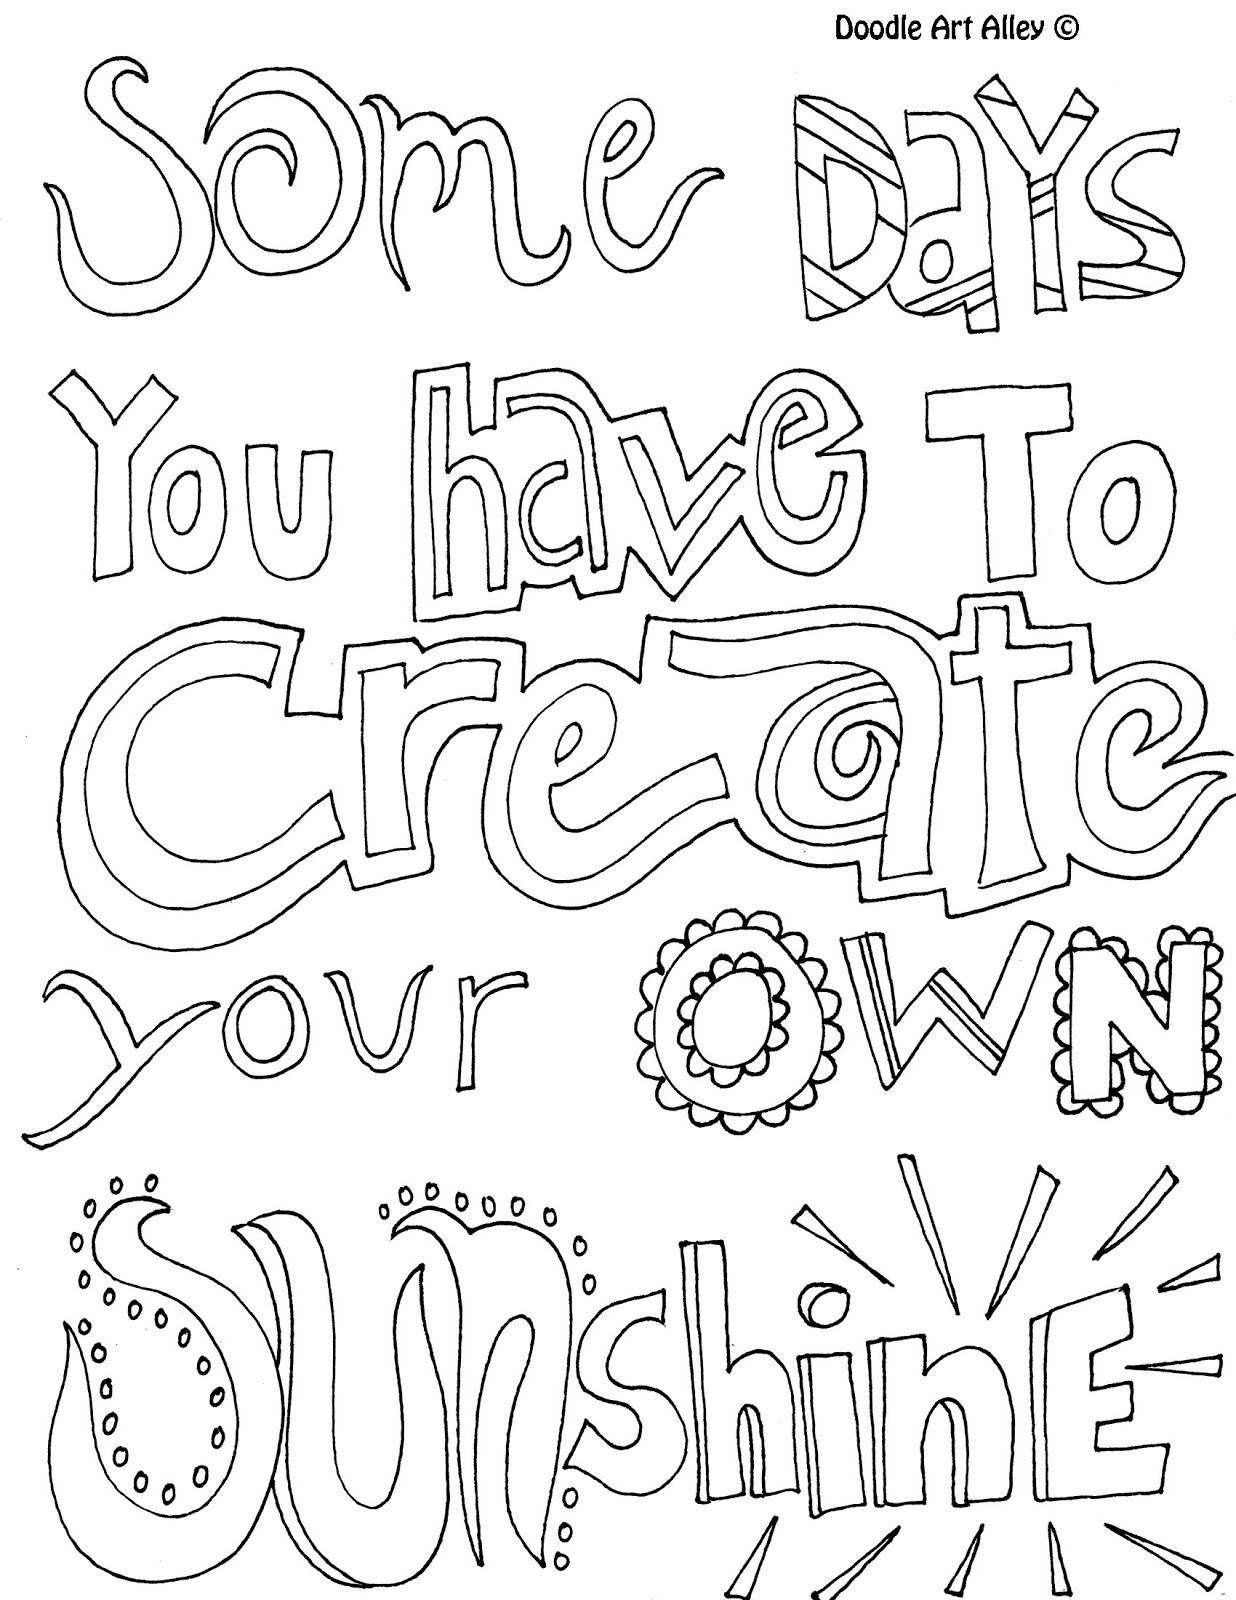 Quotes Coloring Book  Positive Quotes Coloring Pages QuotesGram